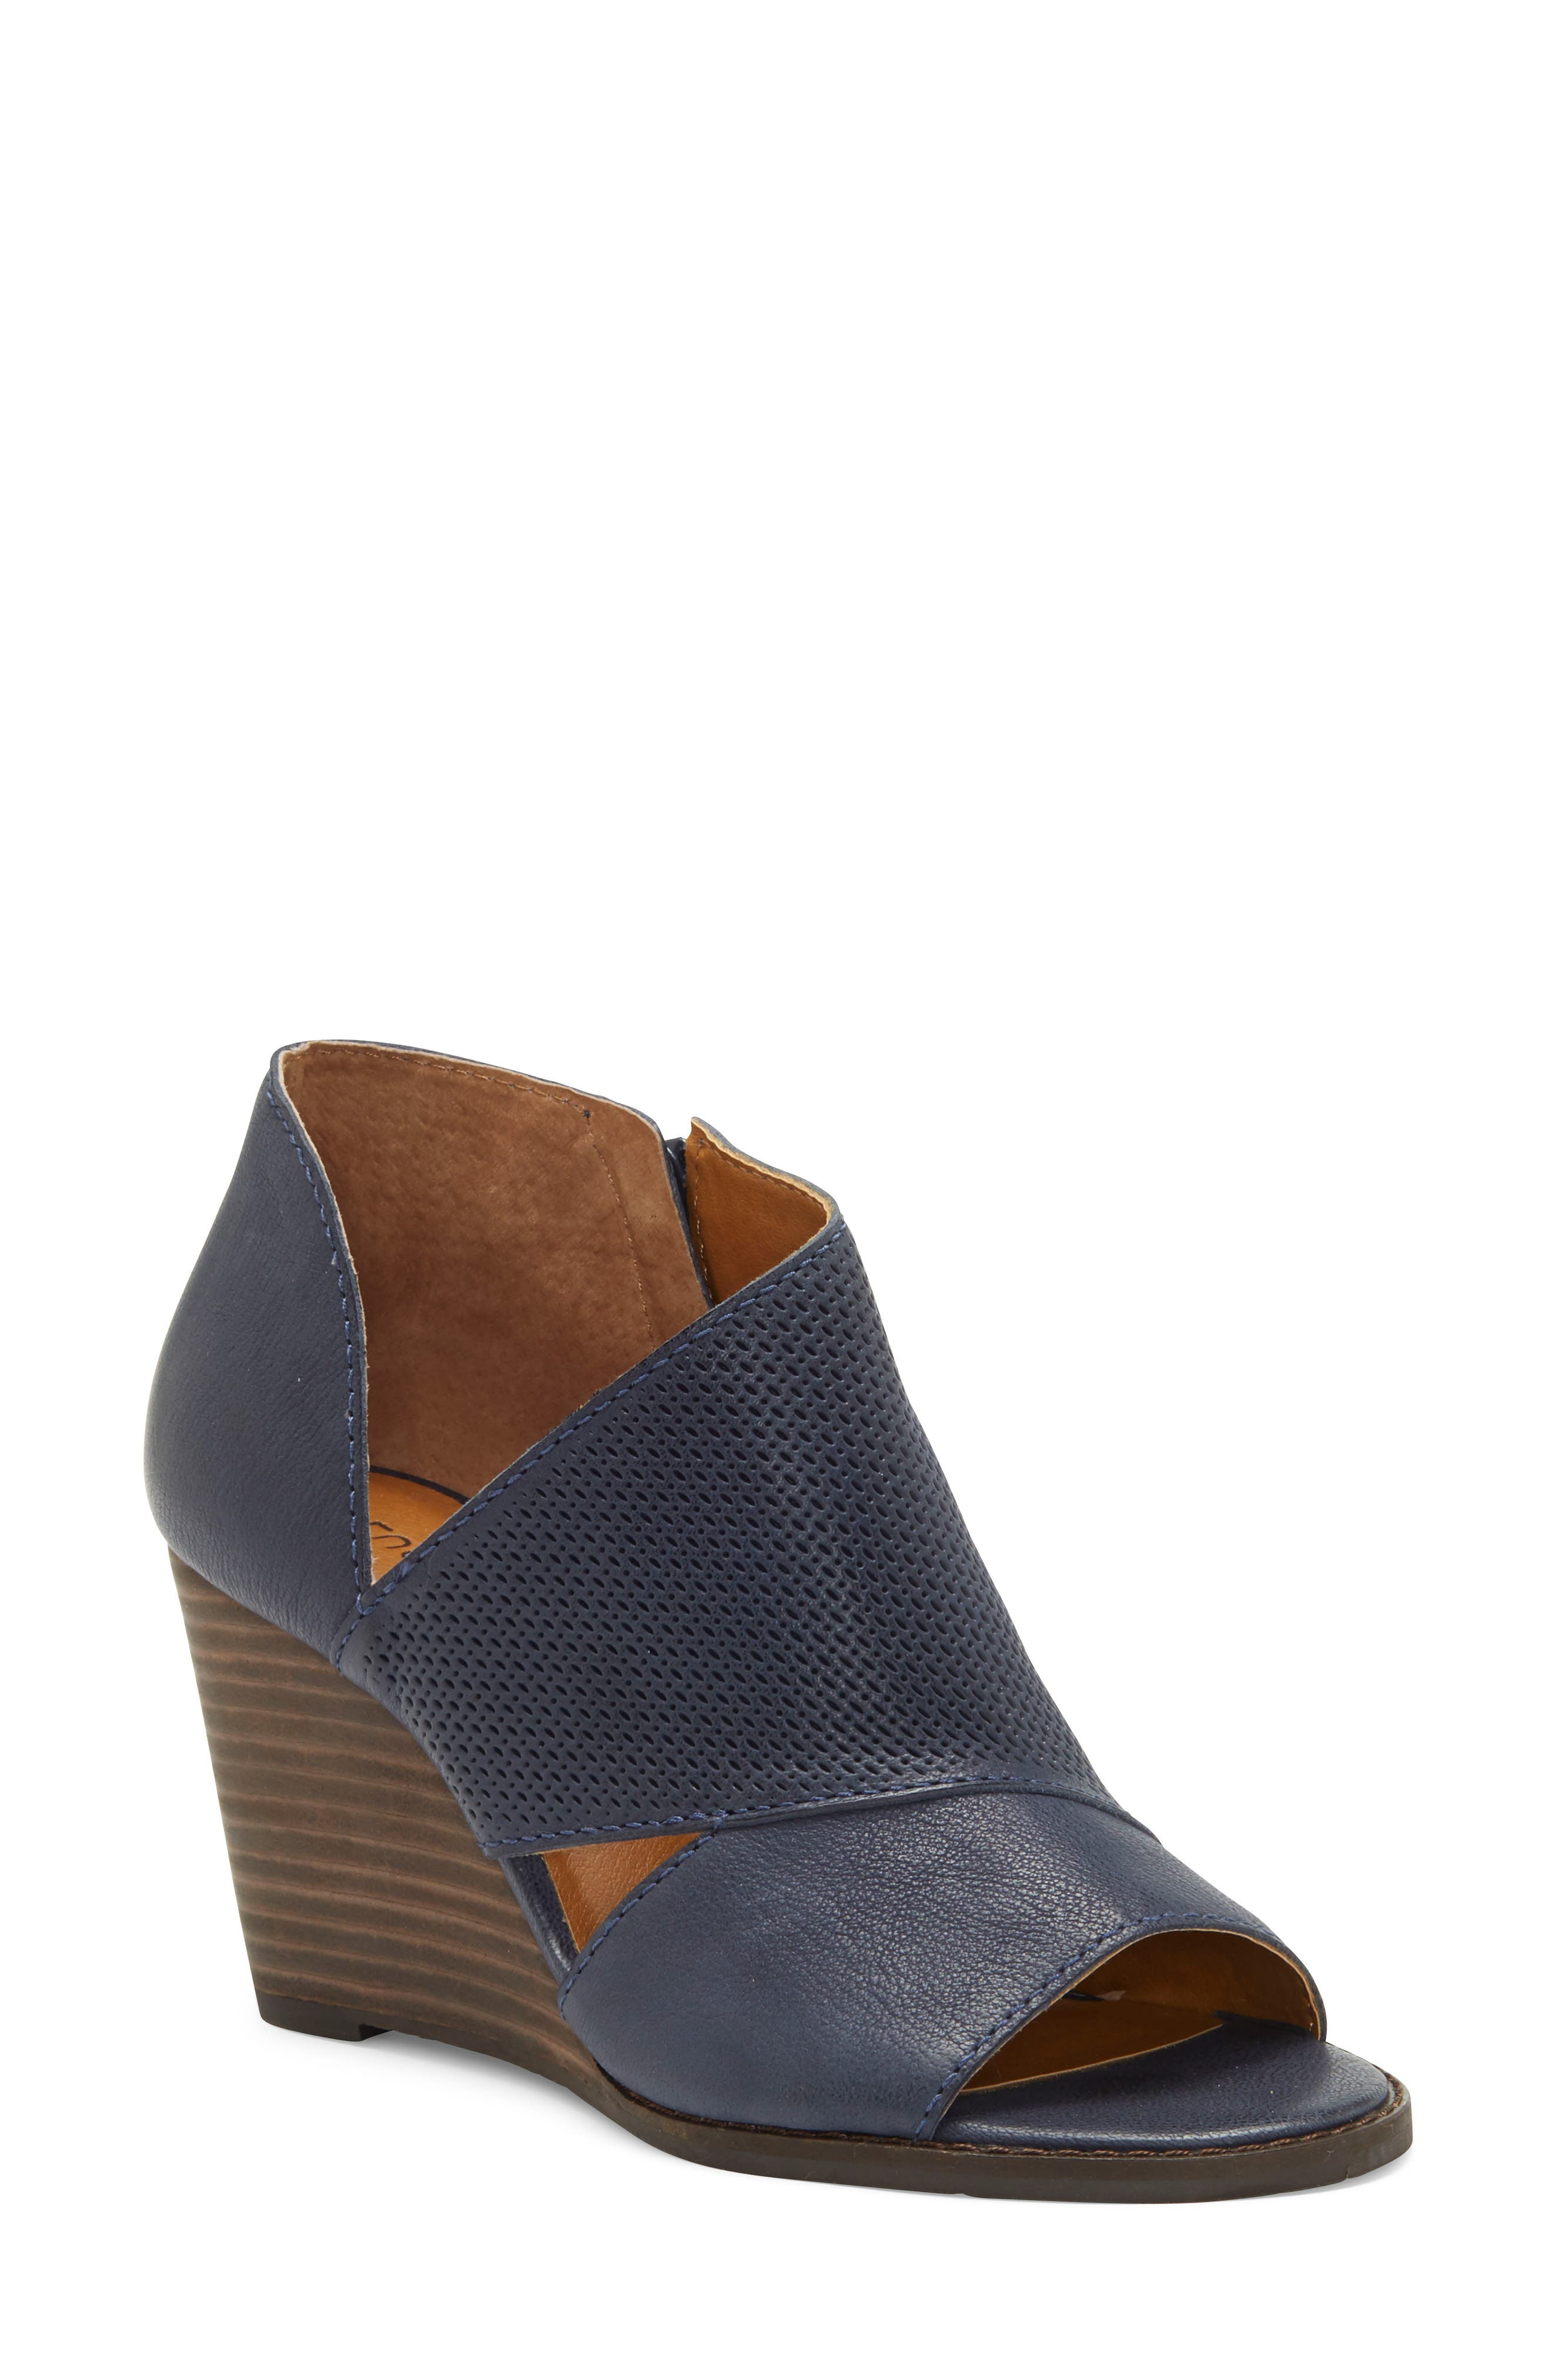 Lucky Brand Jedrek Perforated Open Toe Wedge Bootie (Women)